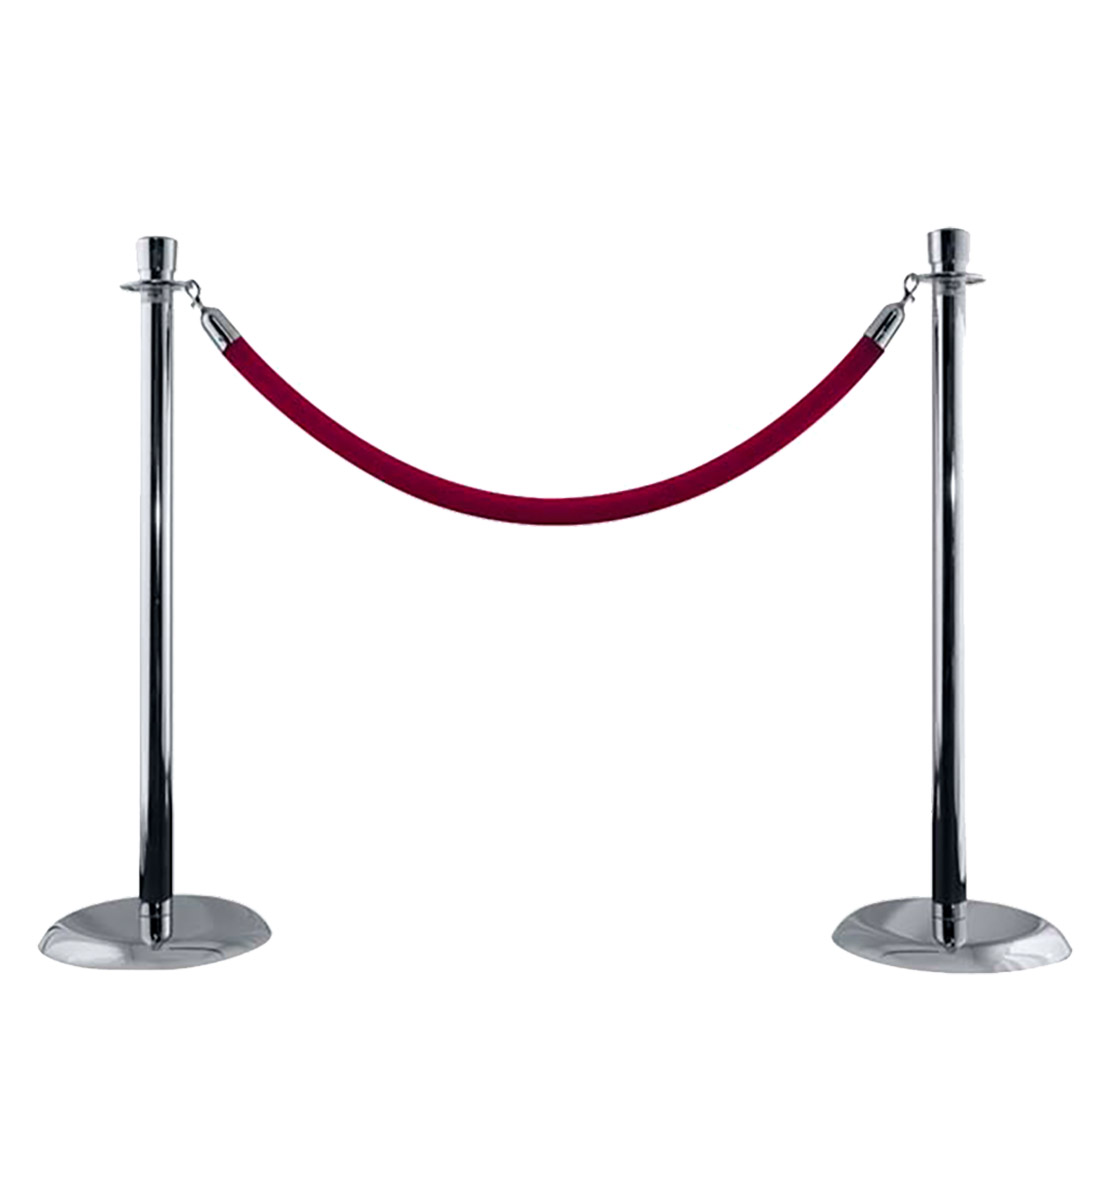 Swell Polished Chrome Lobby Stanchions Facilities Stanchions Georgia Expo Home Interior And Landscaping Pimpapssignezvosmurscom